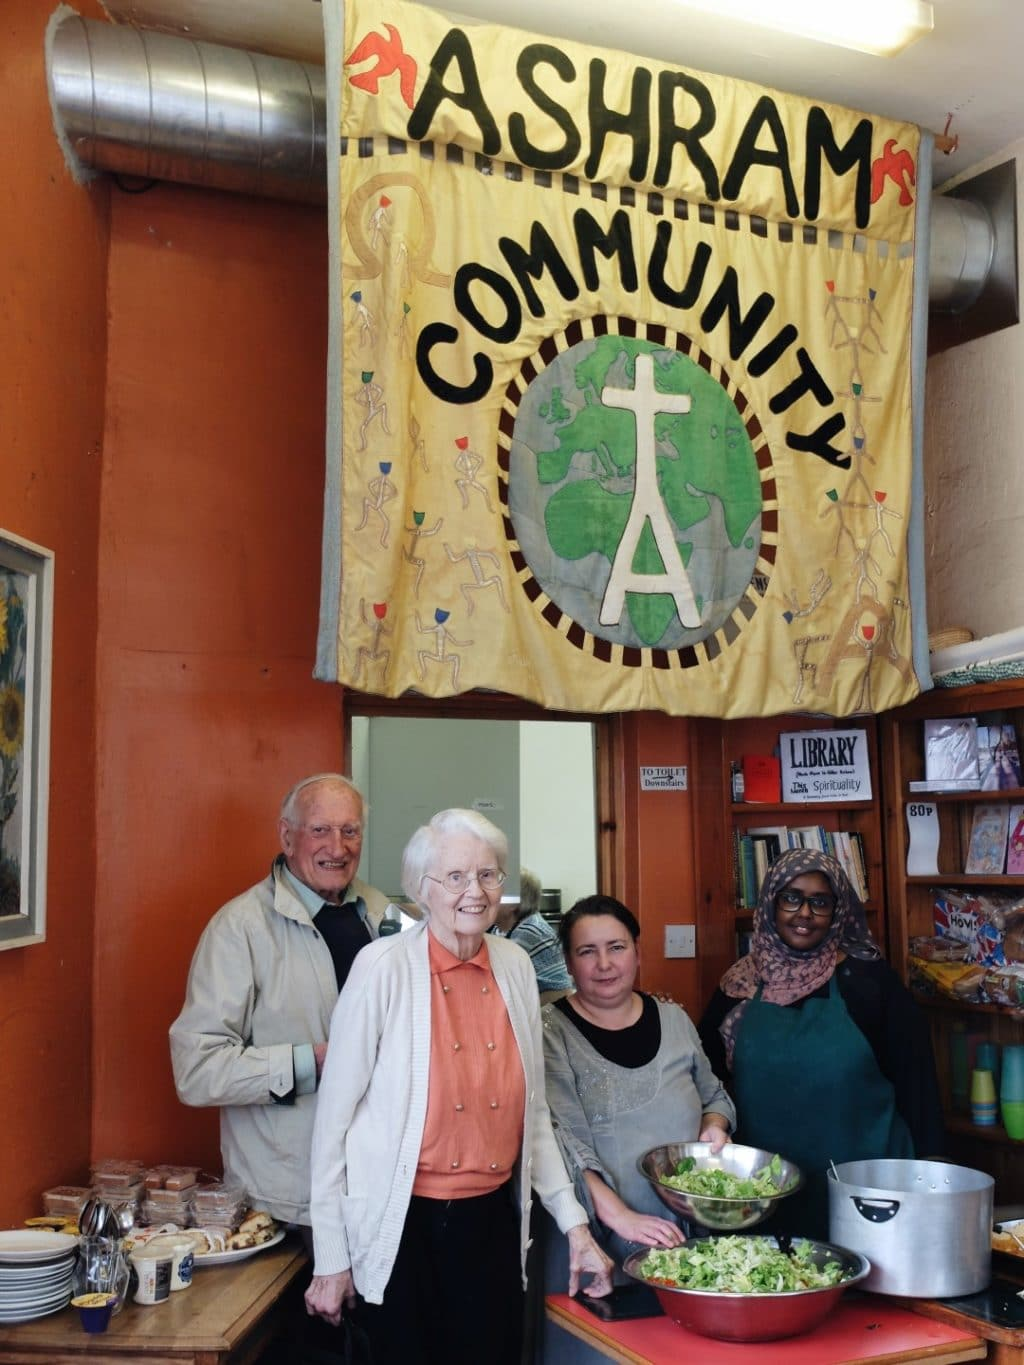 An older couple a white woman and a Muslim woman stand underneath an 'Ashram Community' banner